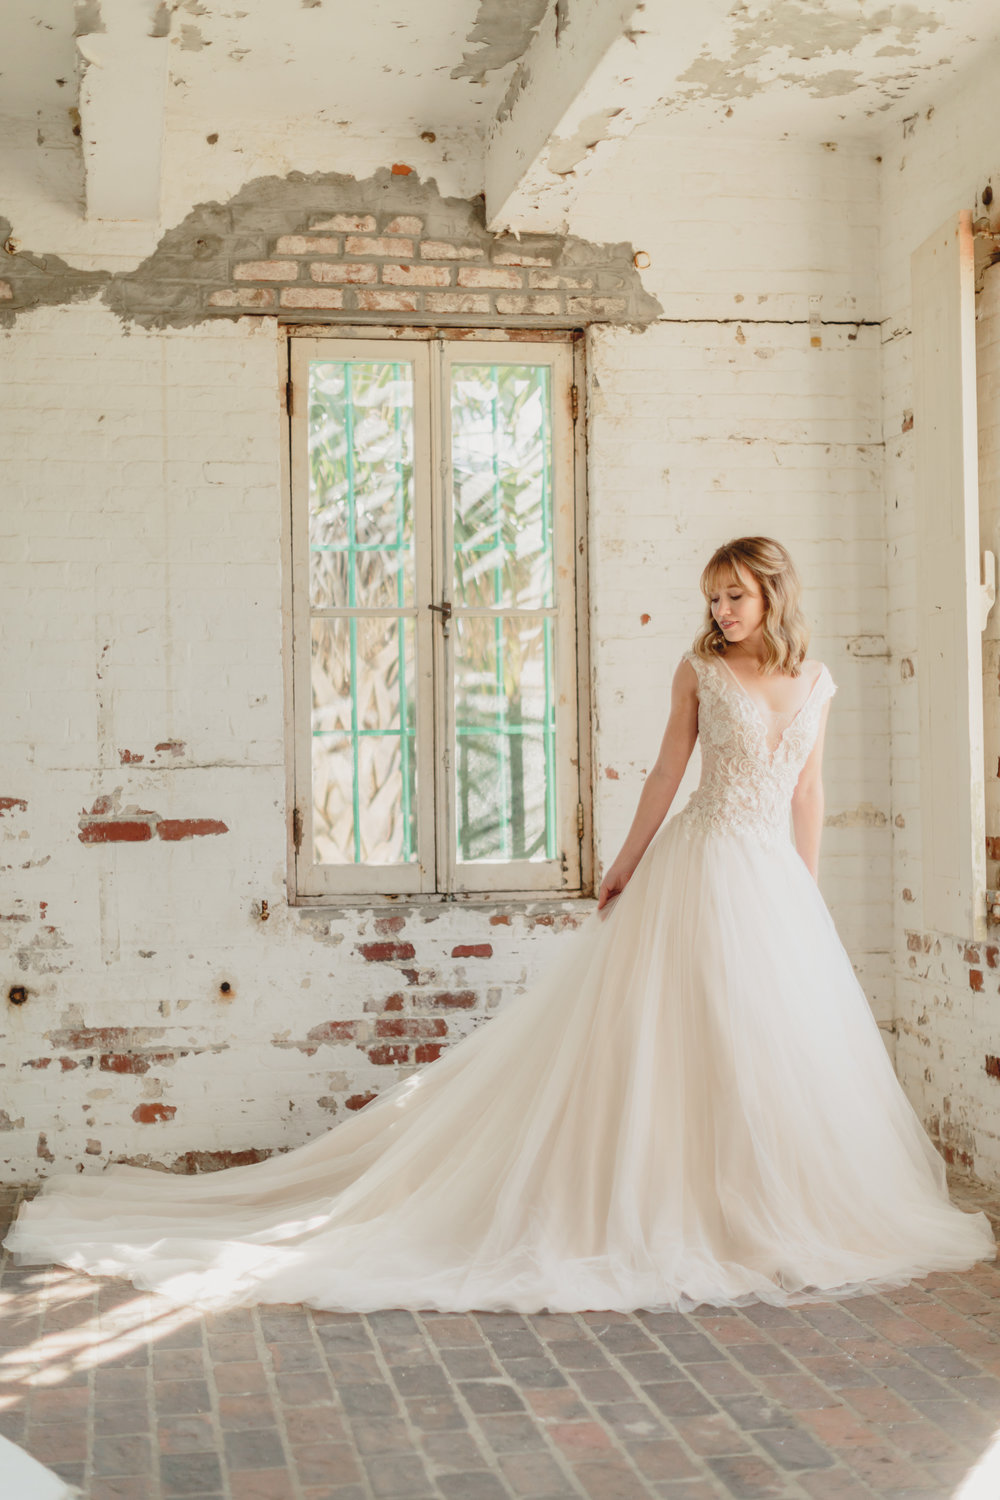 Verita. Bridal gown at Atalaya Castle // Photographed by JoPhoto // Event Styling by The Petal Report  // A Lowcountry Wedding Magazine